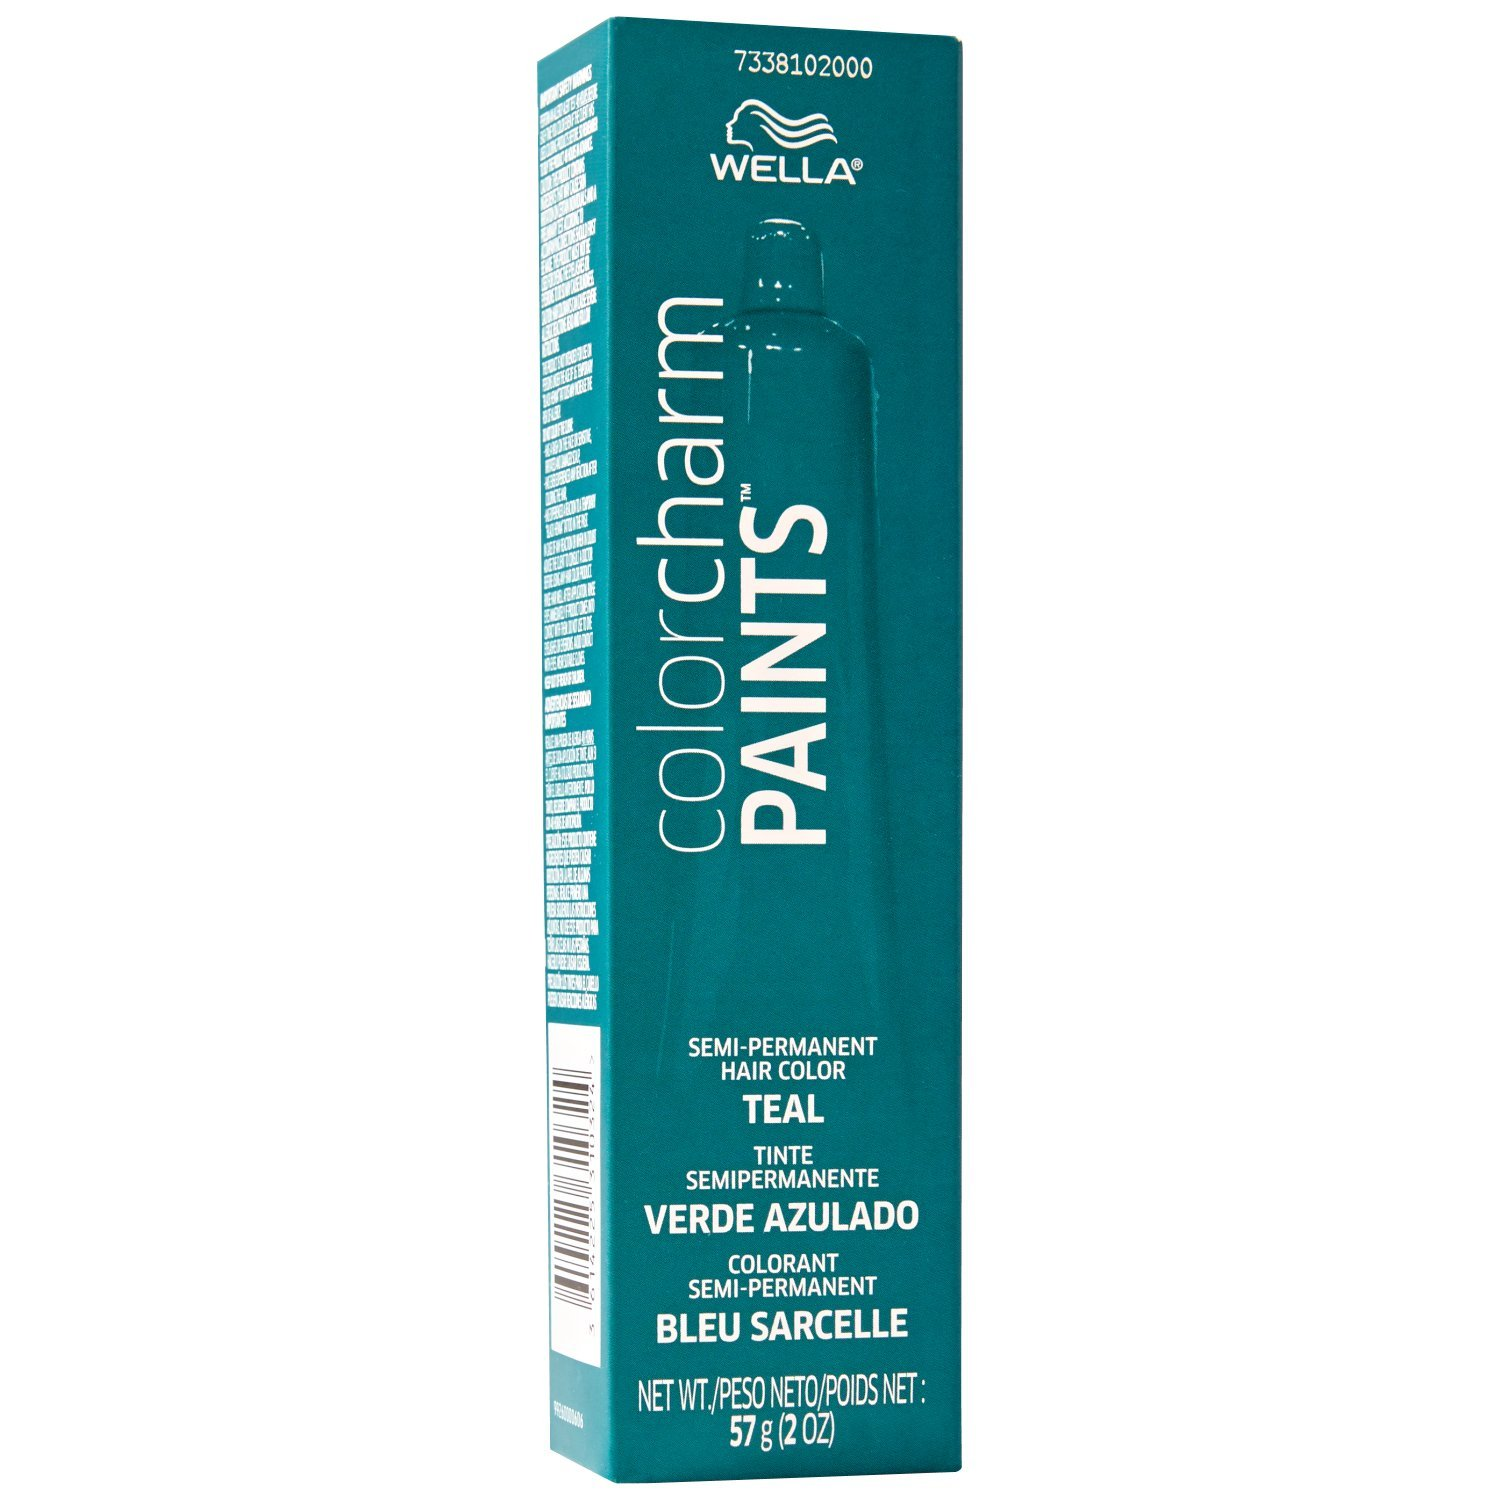 Wella Paints Teal Semi Permanent Hair Color Teal Low Cost